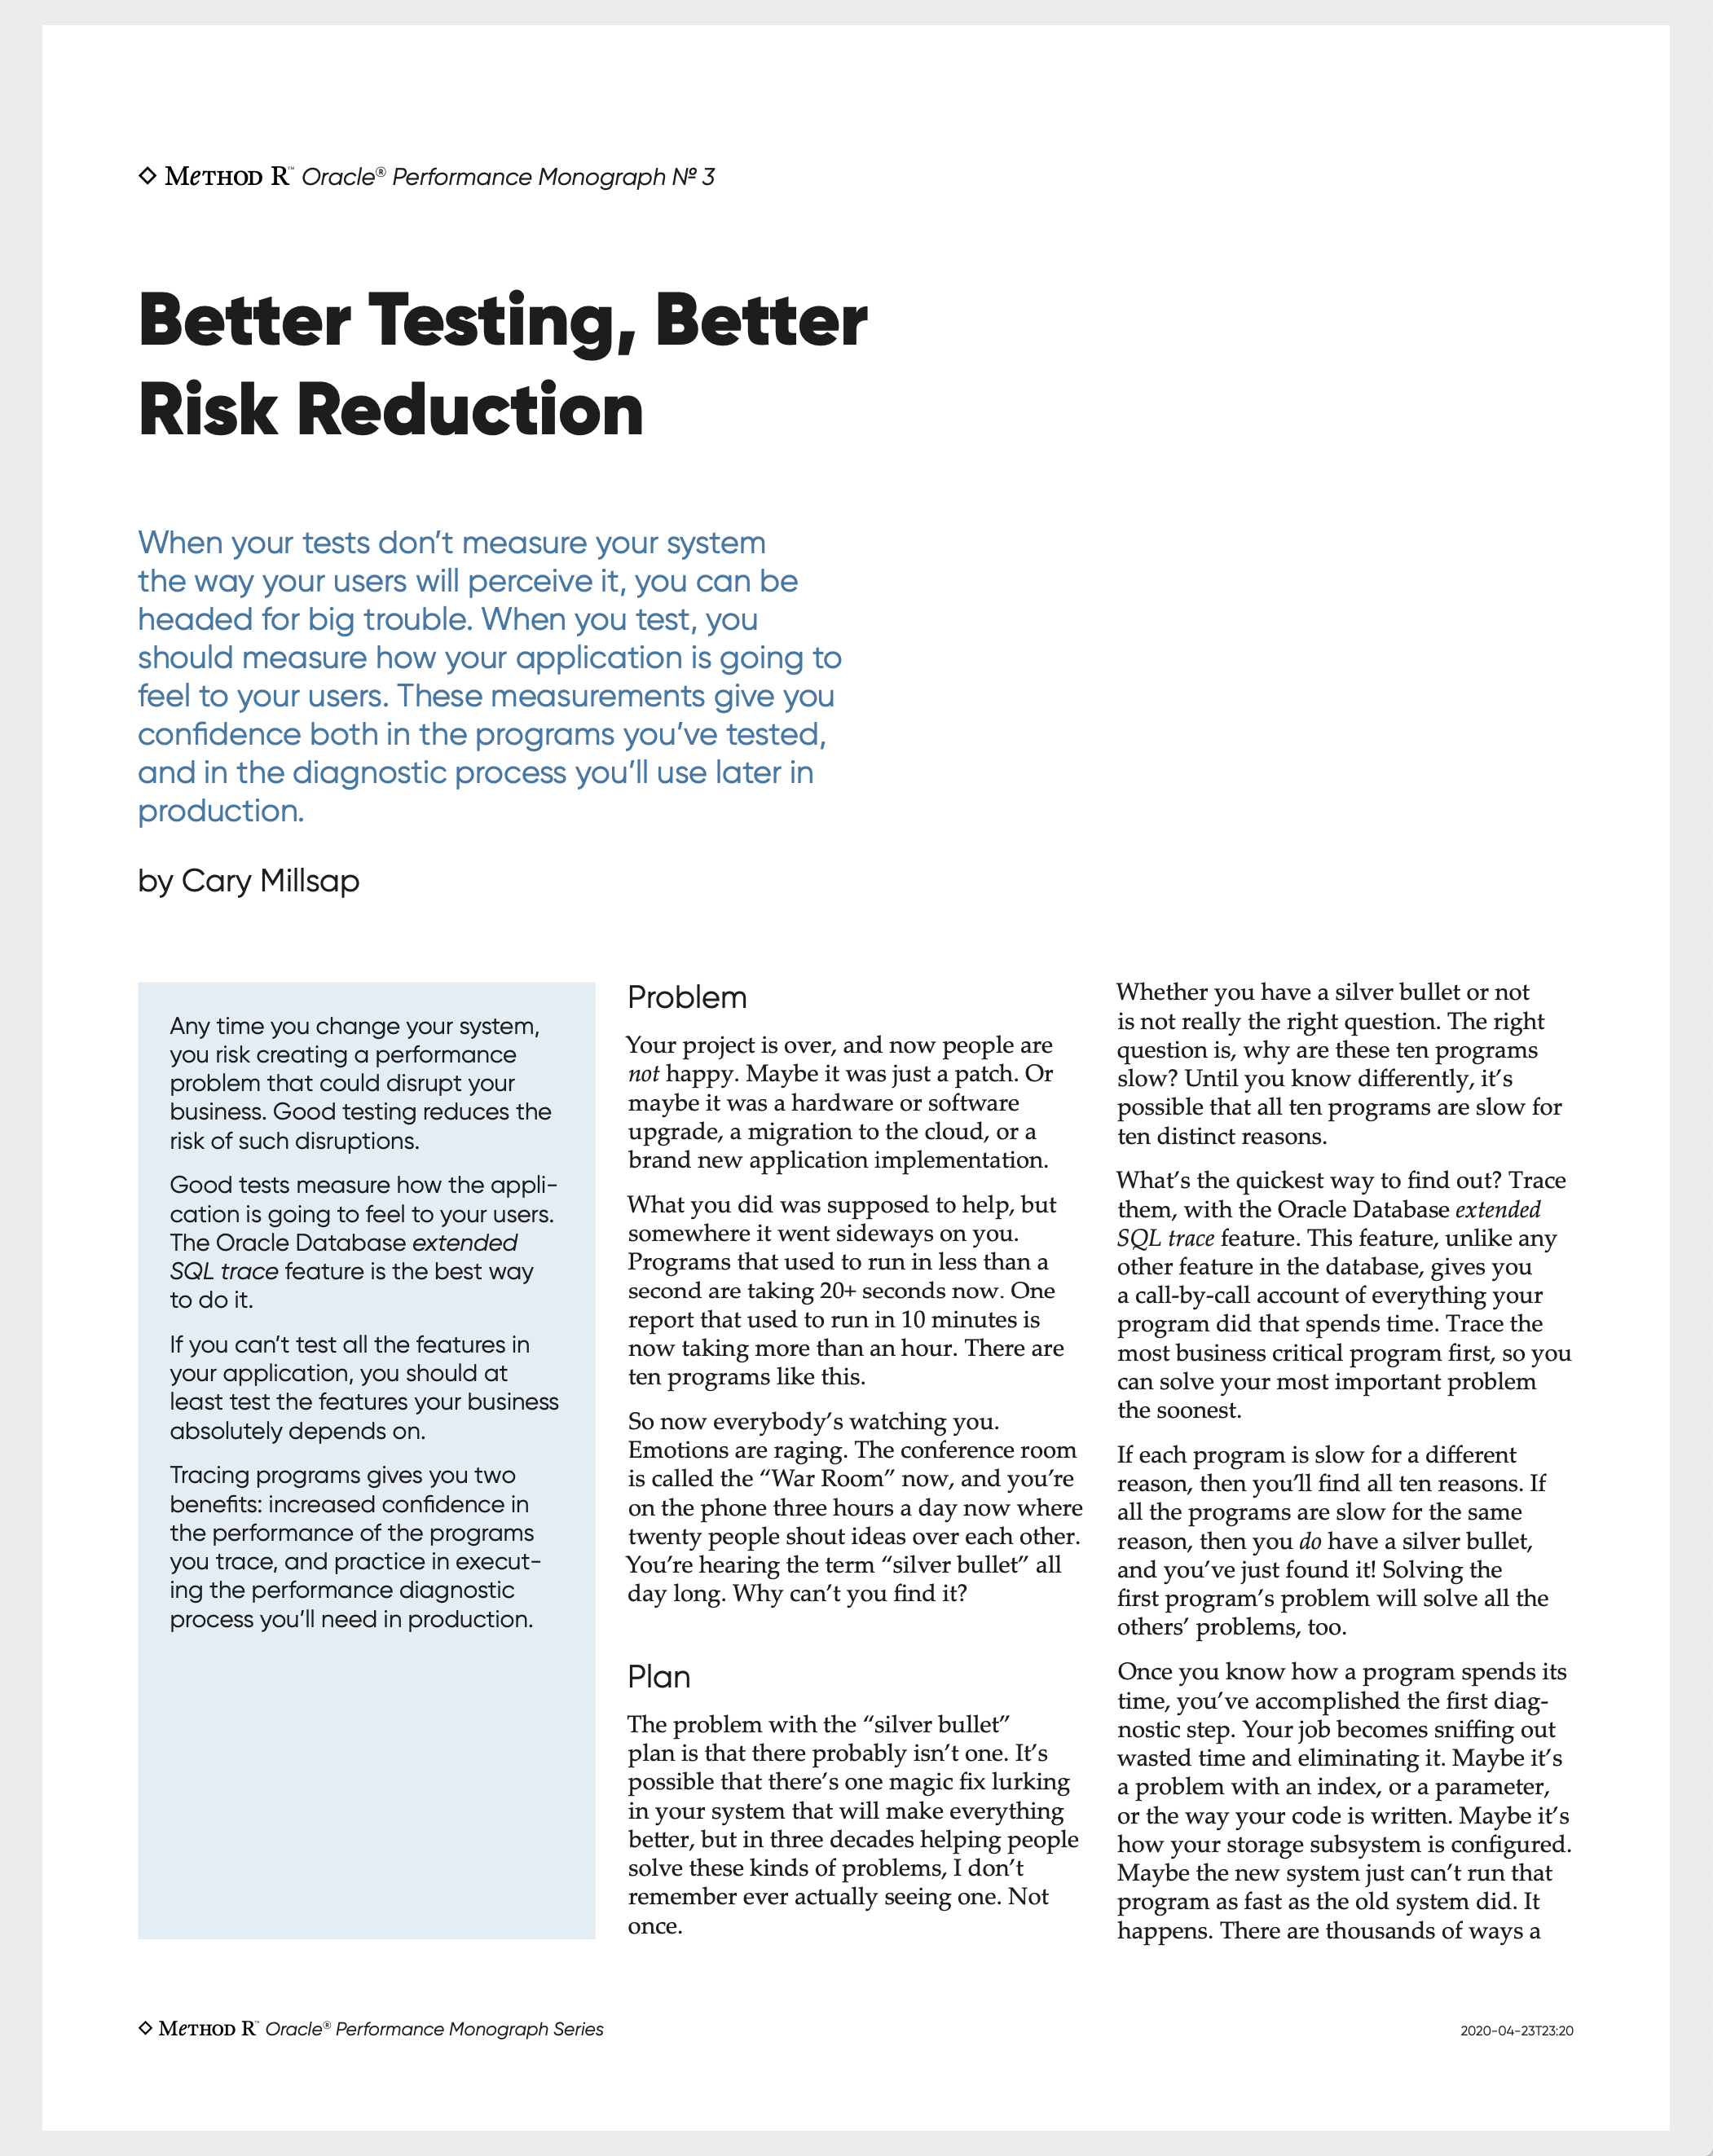 Better Testing, Better Risk Reduction